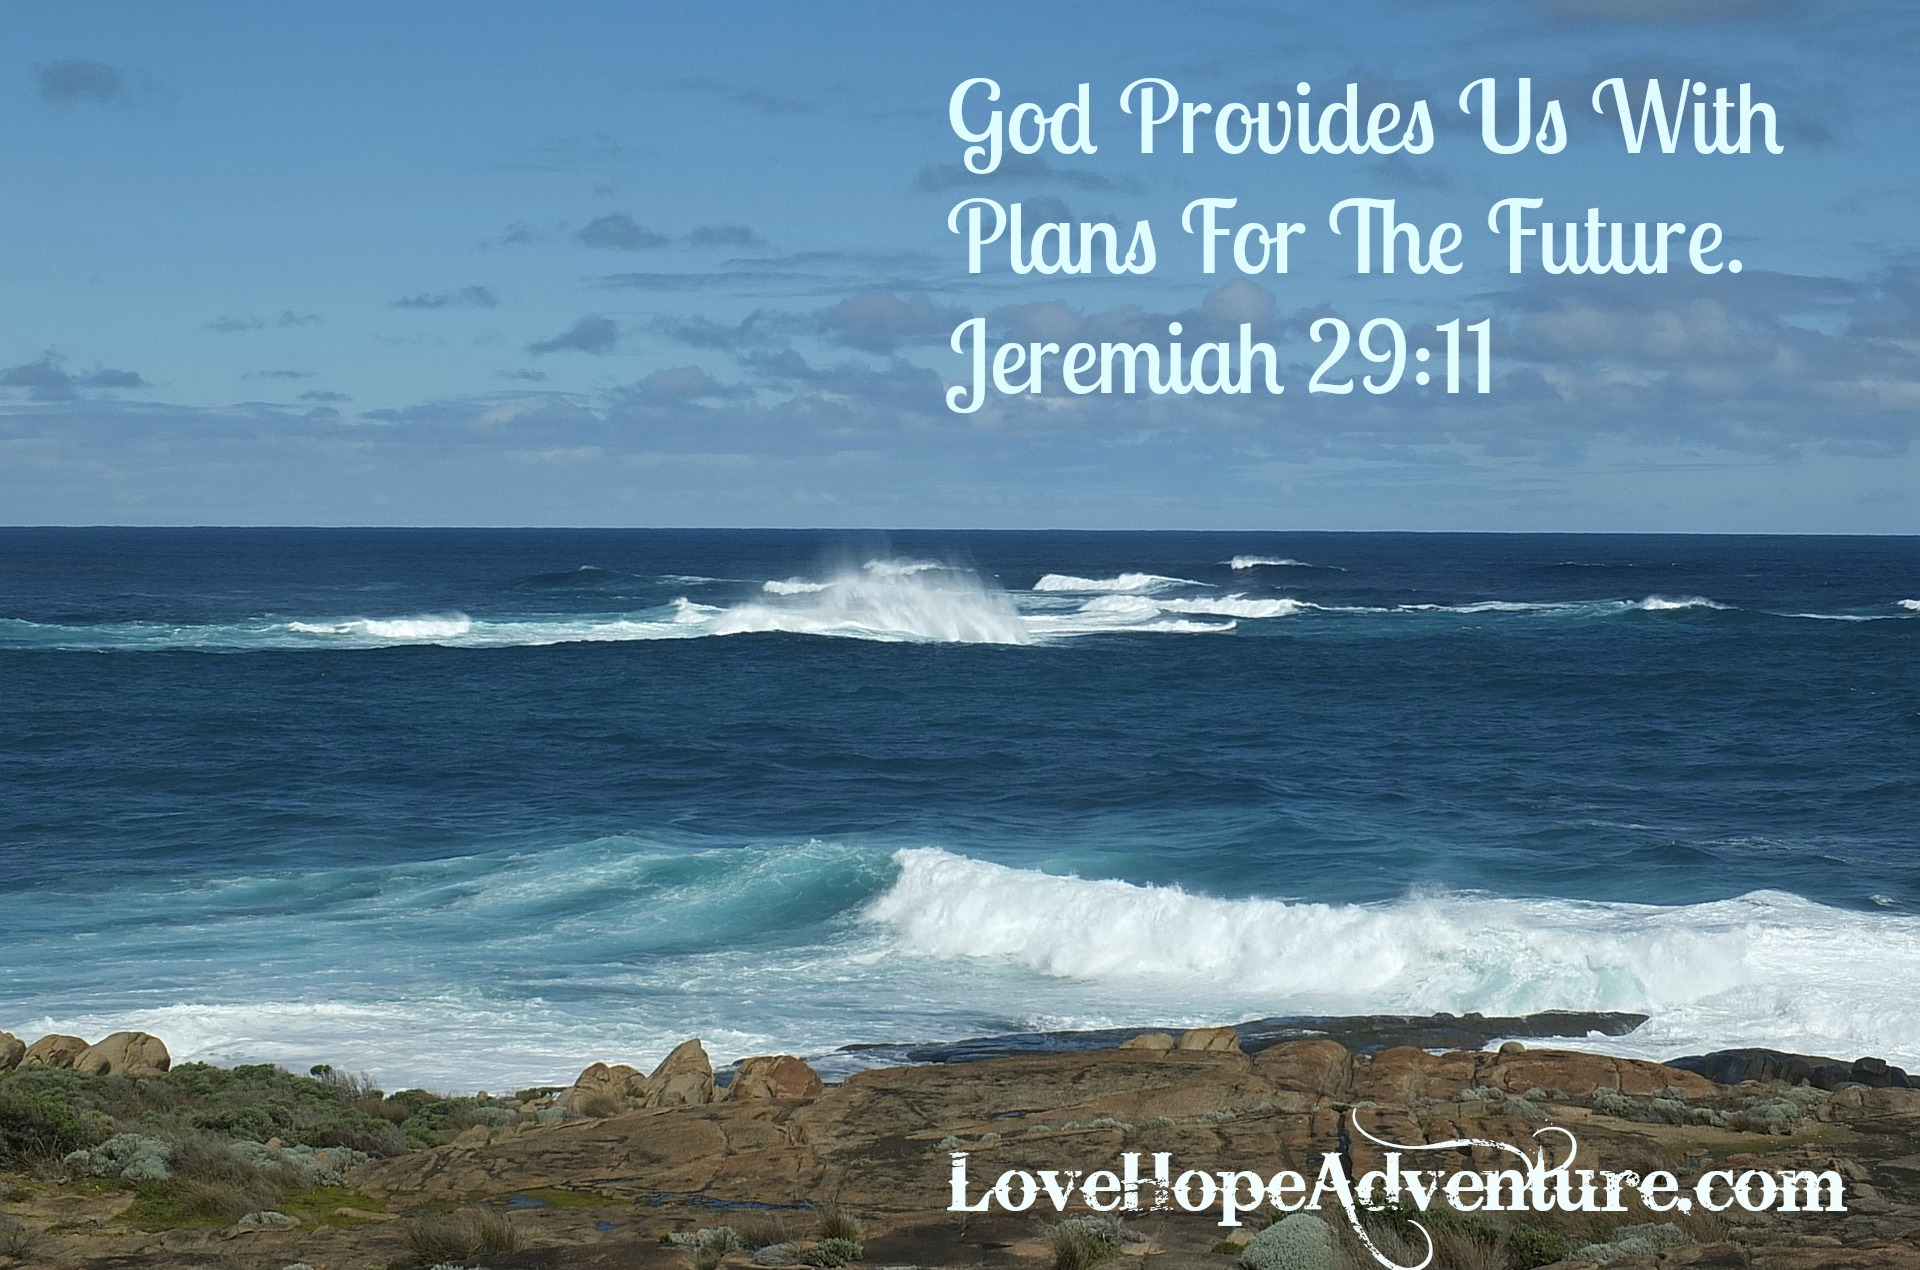 God Provides Us With Plans For The Future